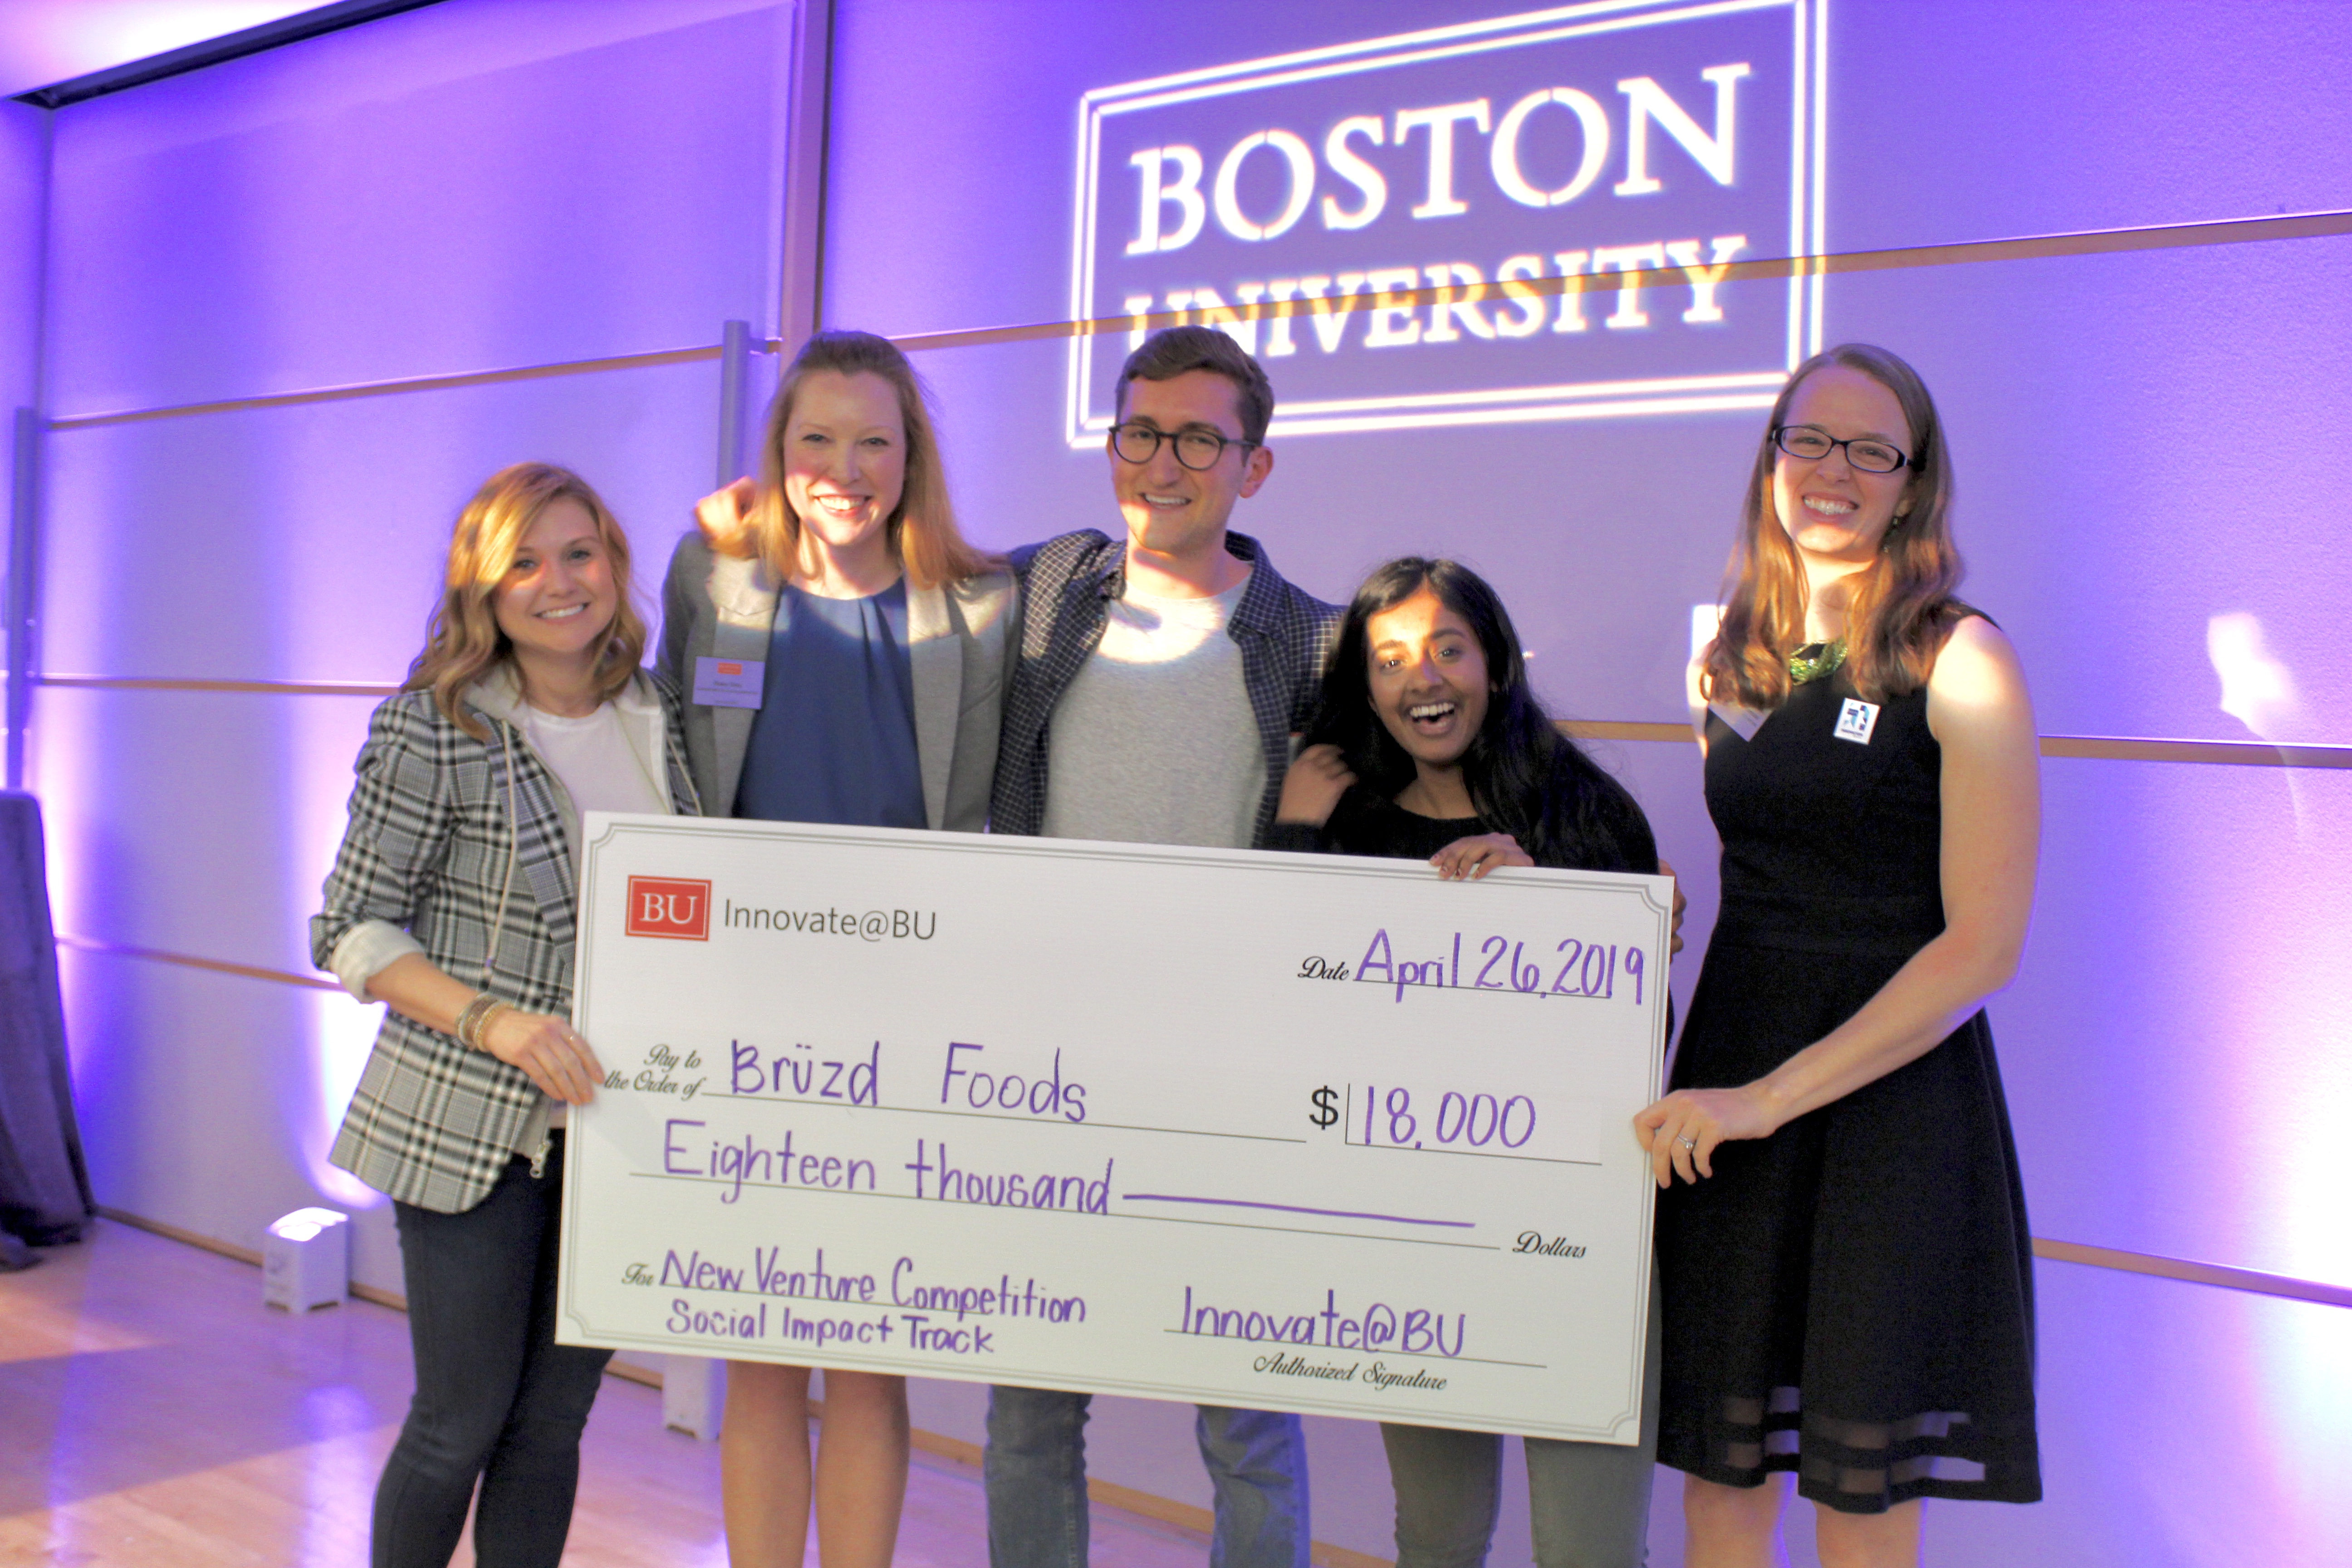 New Venture Competition | Innovate@BU